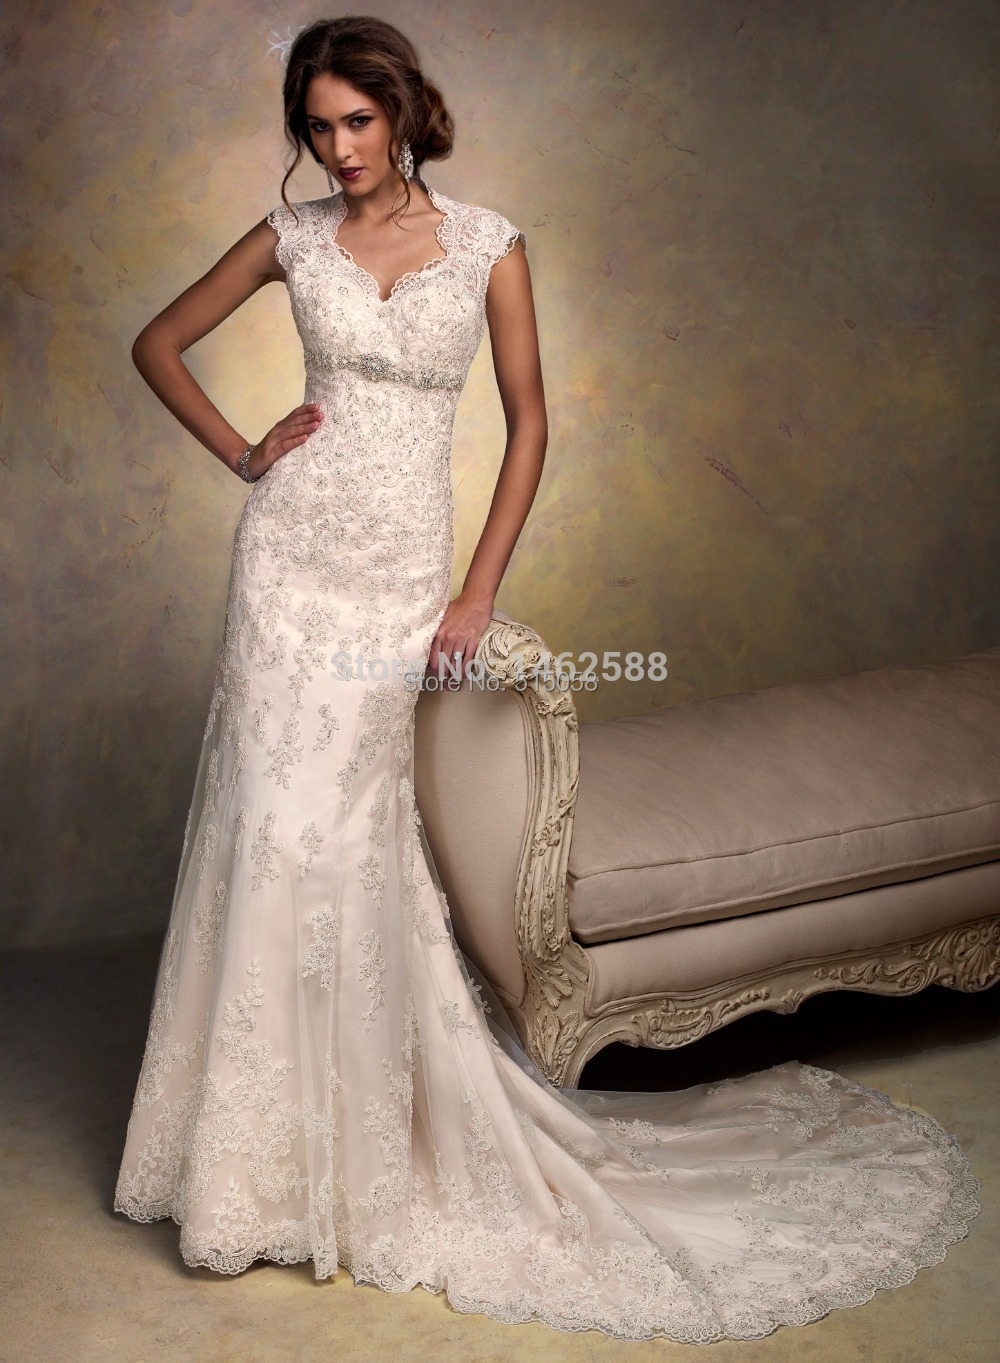 vintage lace cap sleeve wedding dresses « Bella Forte Glass Studio